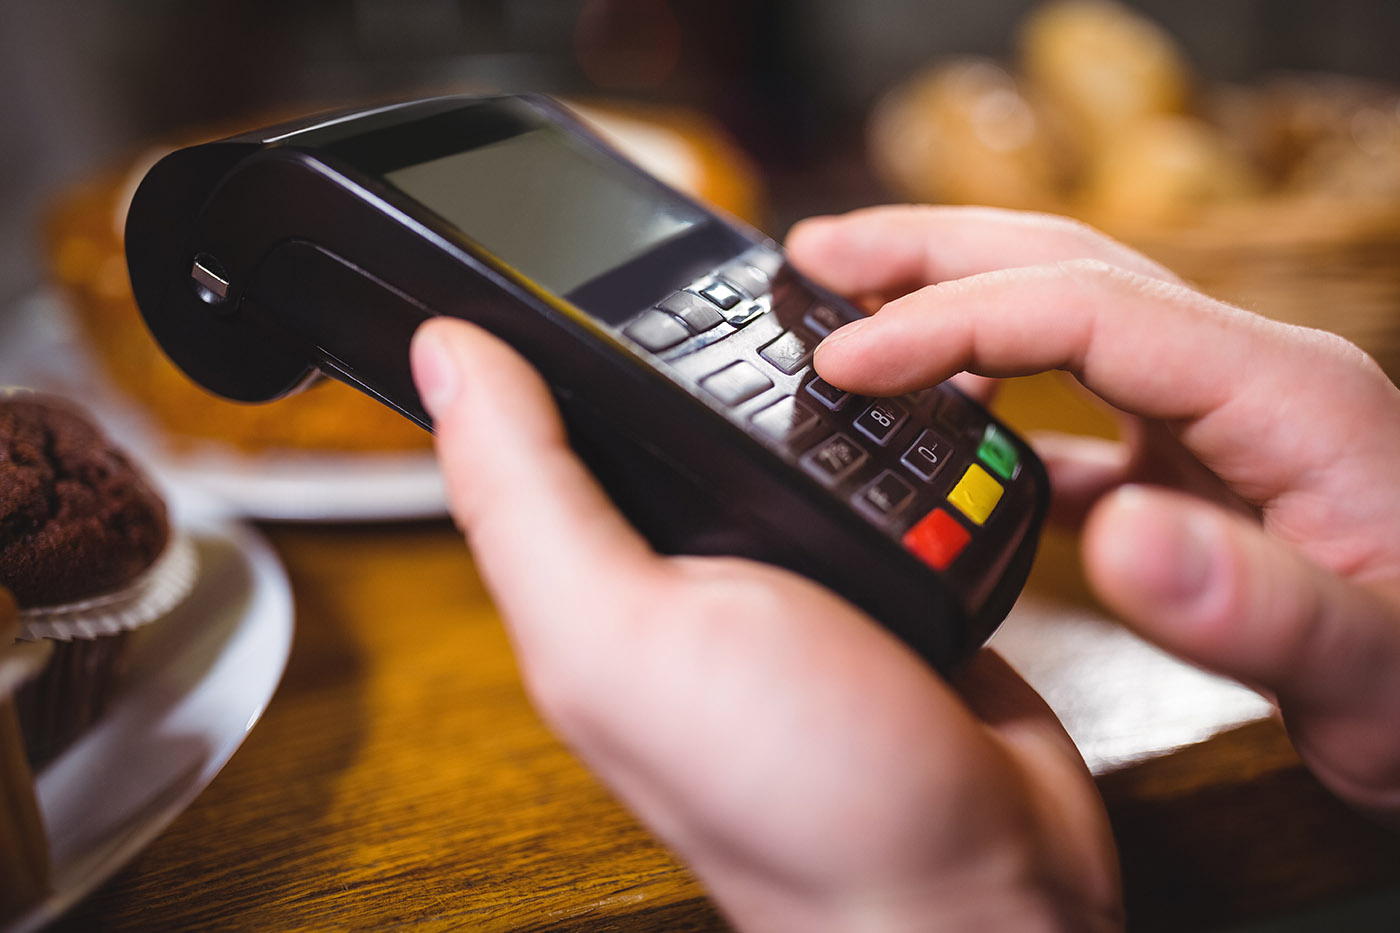 EMV Transaction Flow. Part 2: PSE and AID, Candidate List and Application Selection